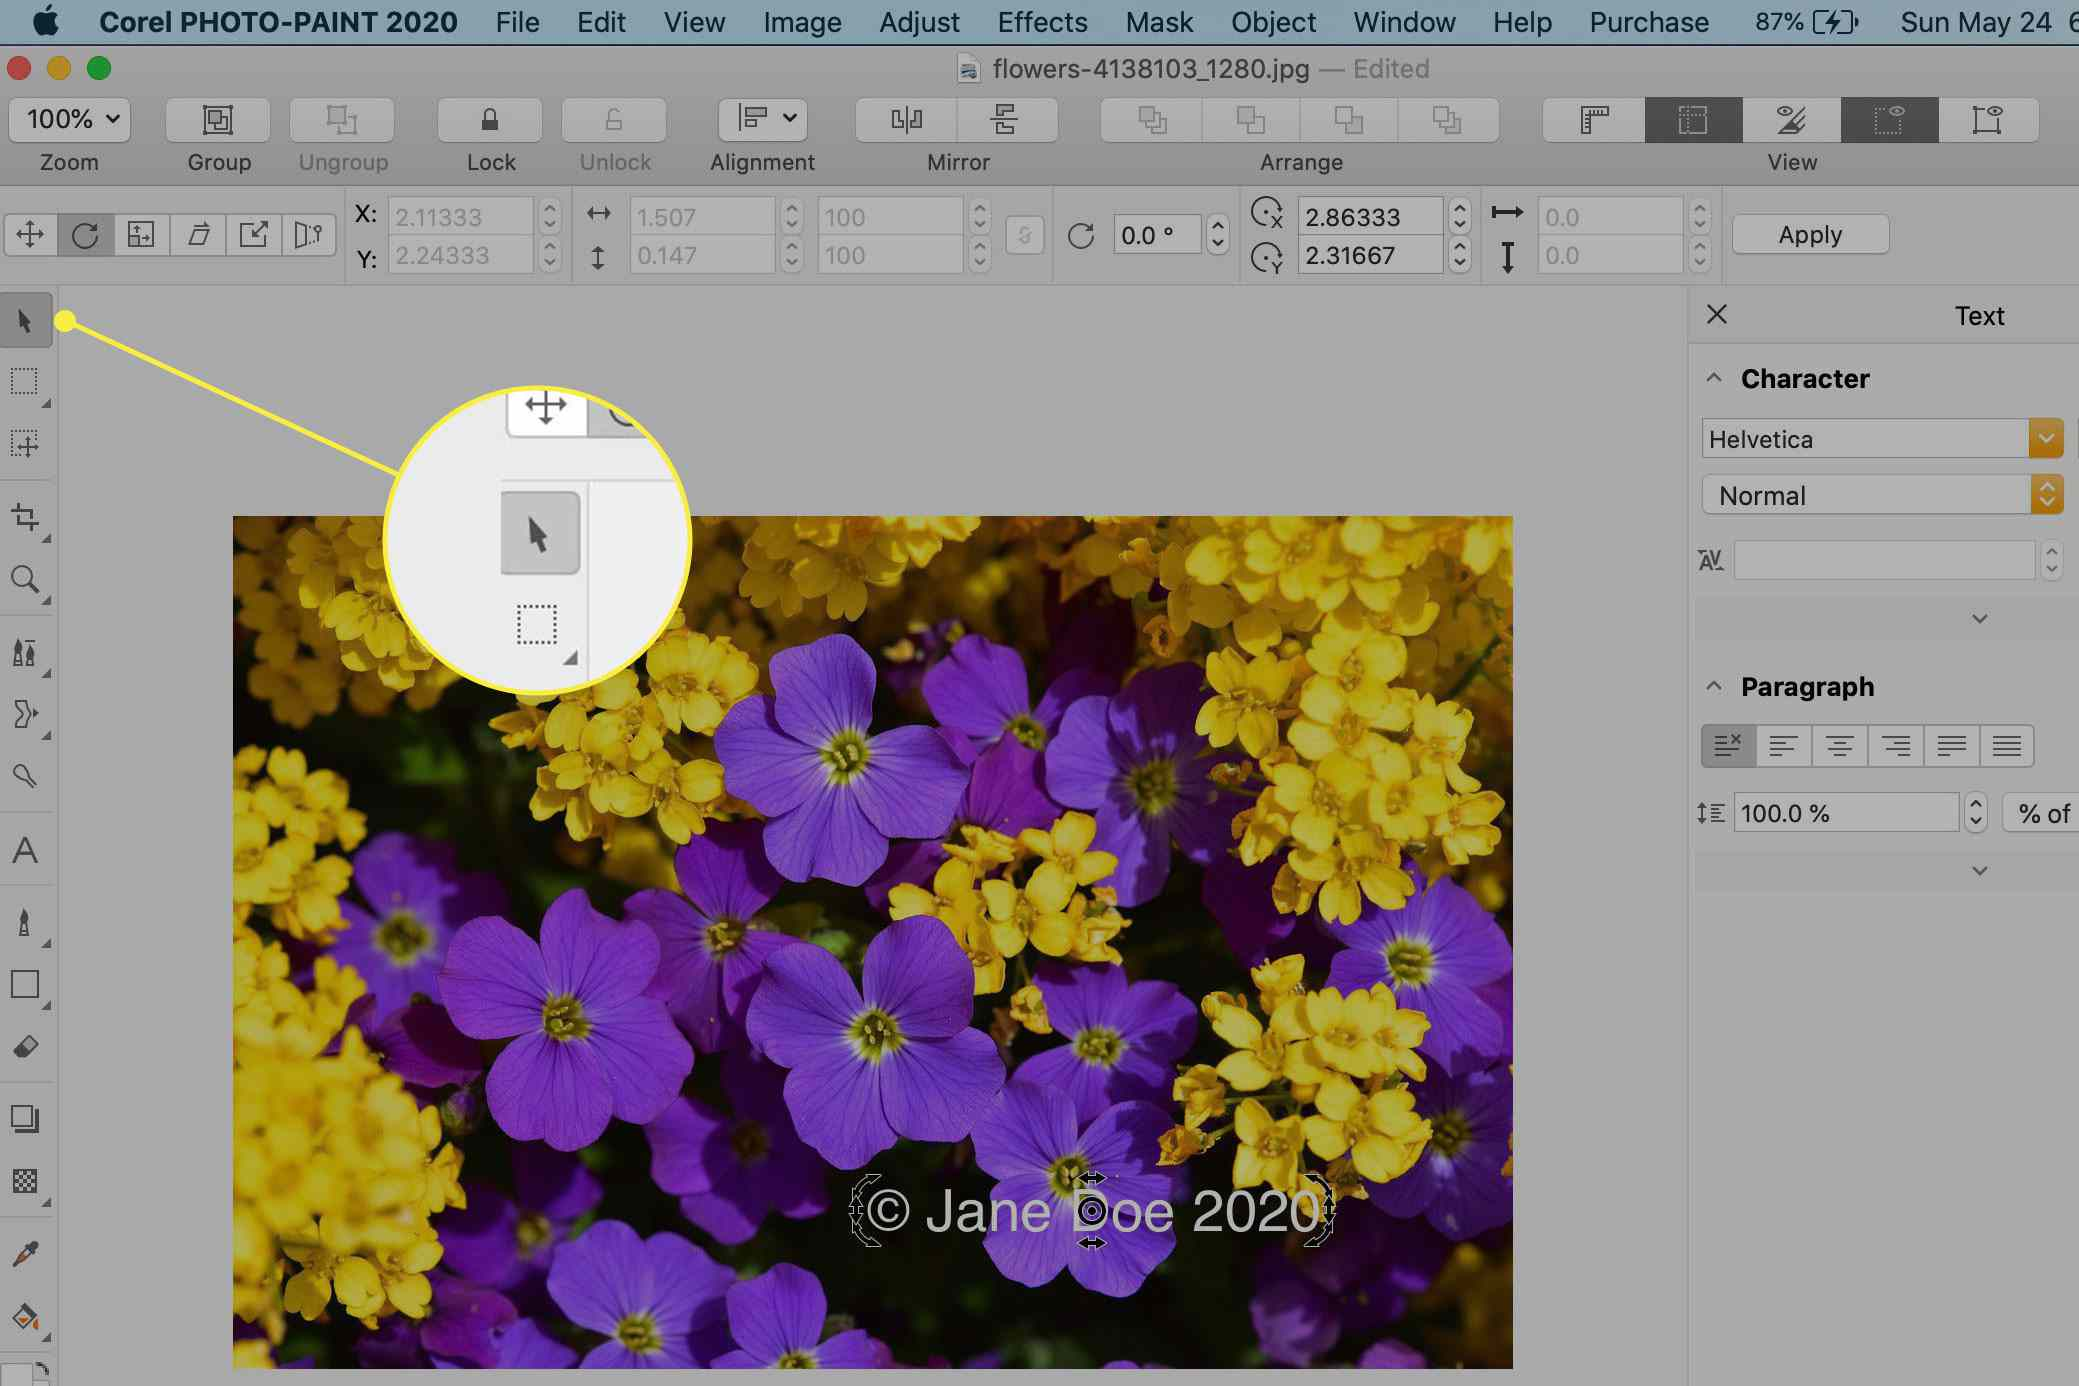 The Object Pick tool in Corel Photo-Paint